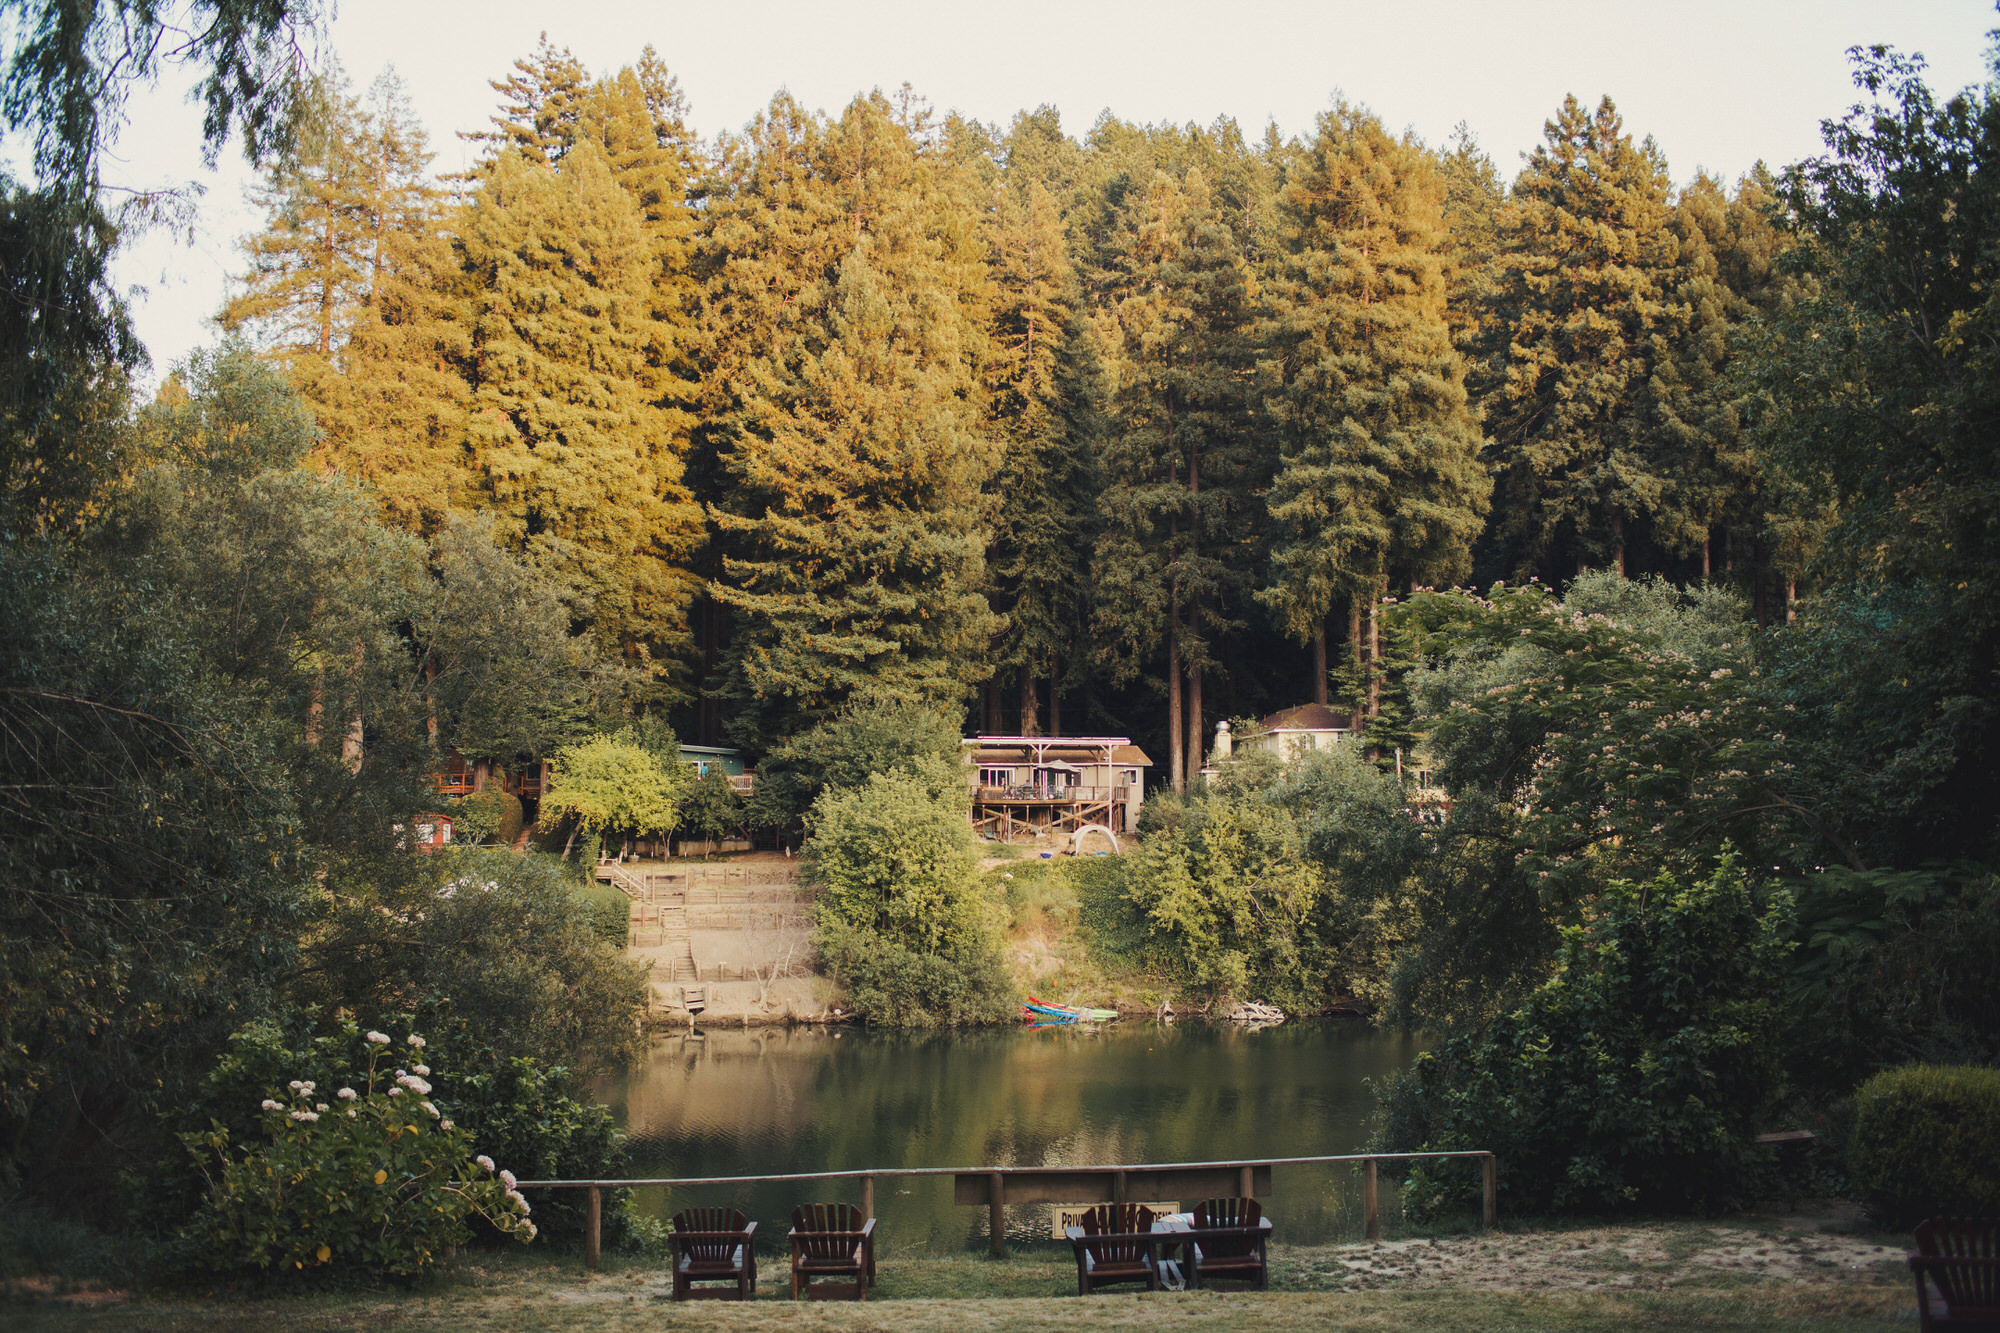 View from The Inn on the Russian River